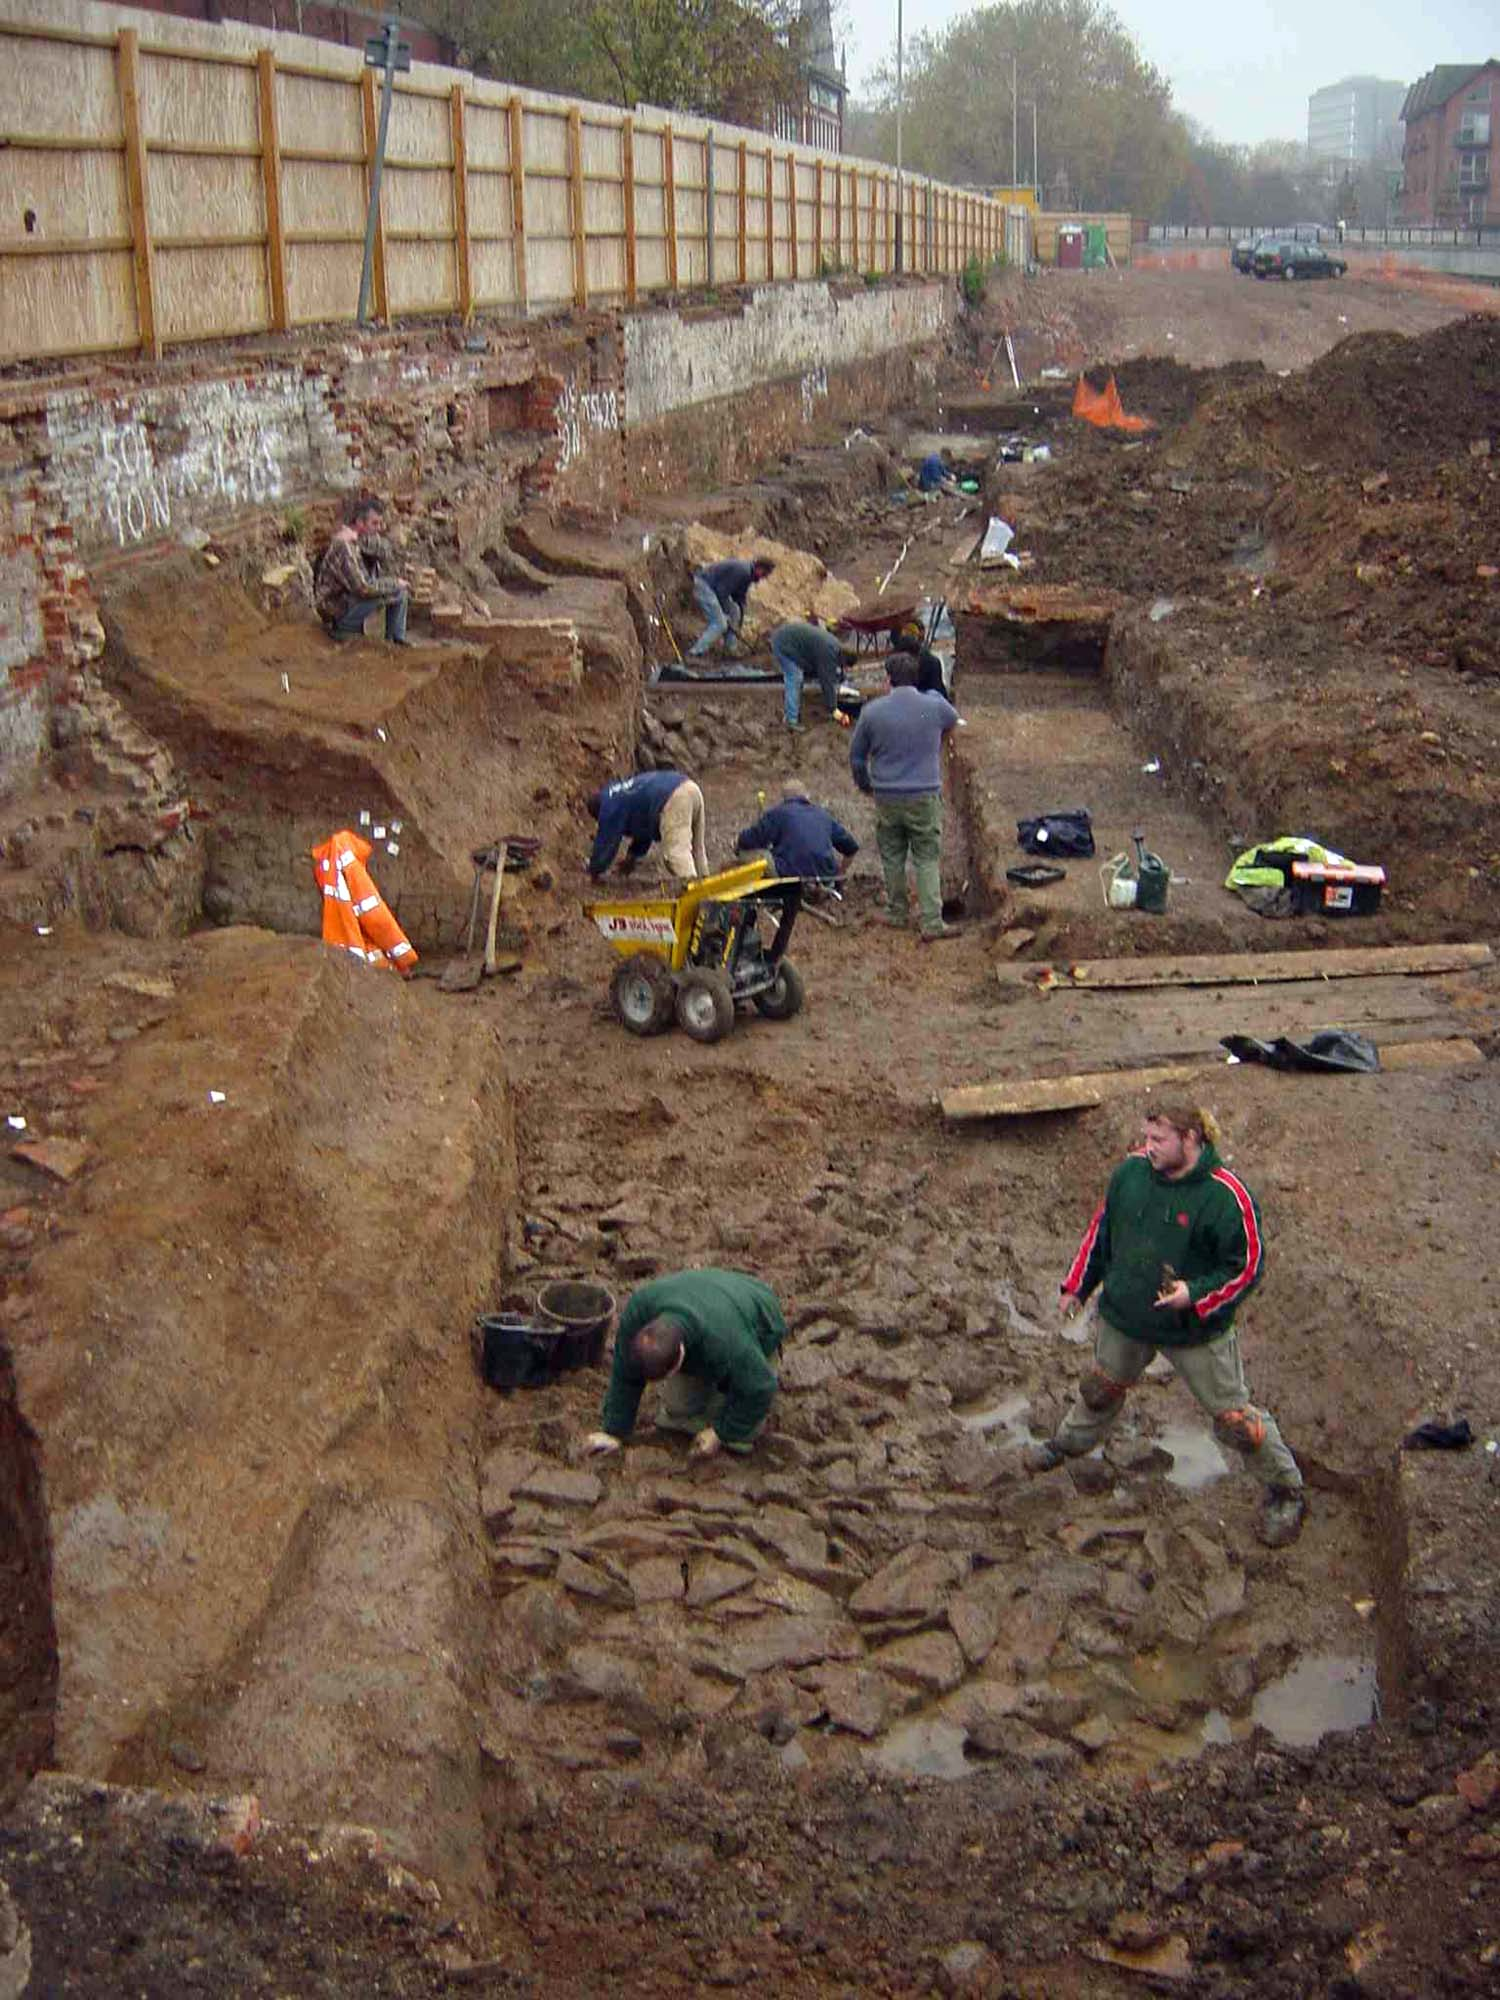 Archaeologists excavate a length of the medieval town defences on Bath Lane. Fallen masonry next to the wall and areas of scorched foundation were probably evidence of the 1173 siege - University of Leicester Archaeological Services